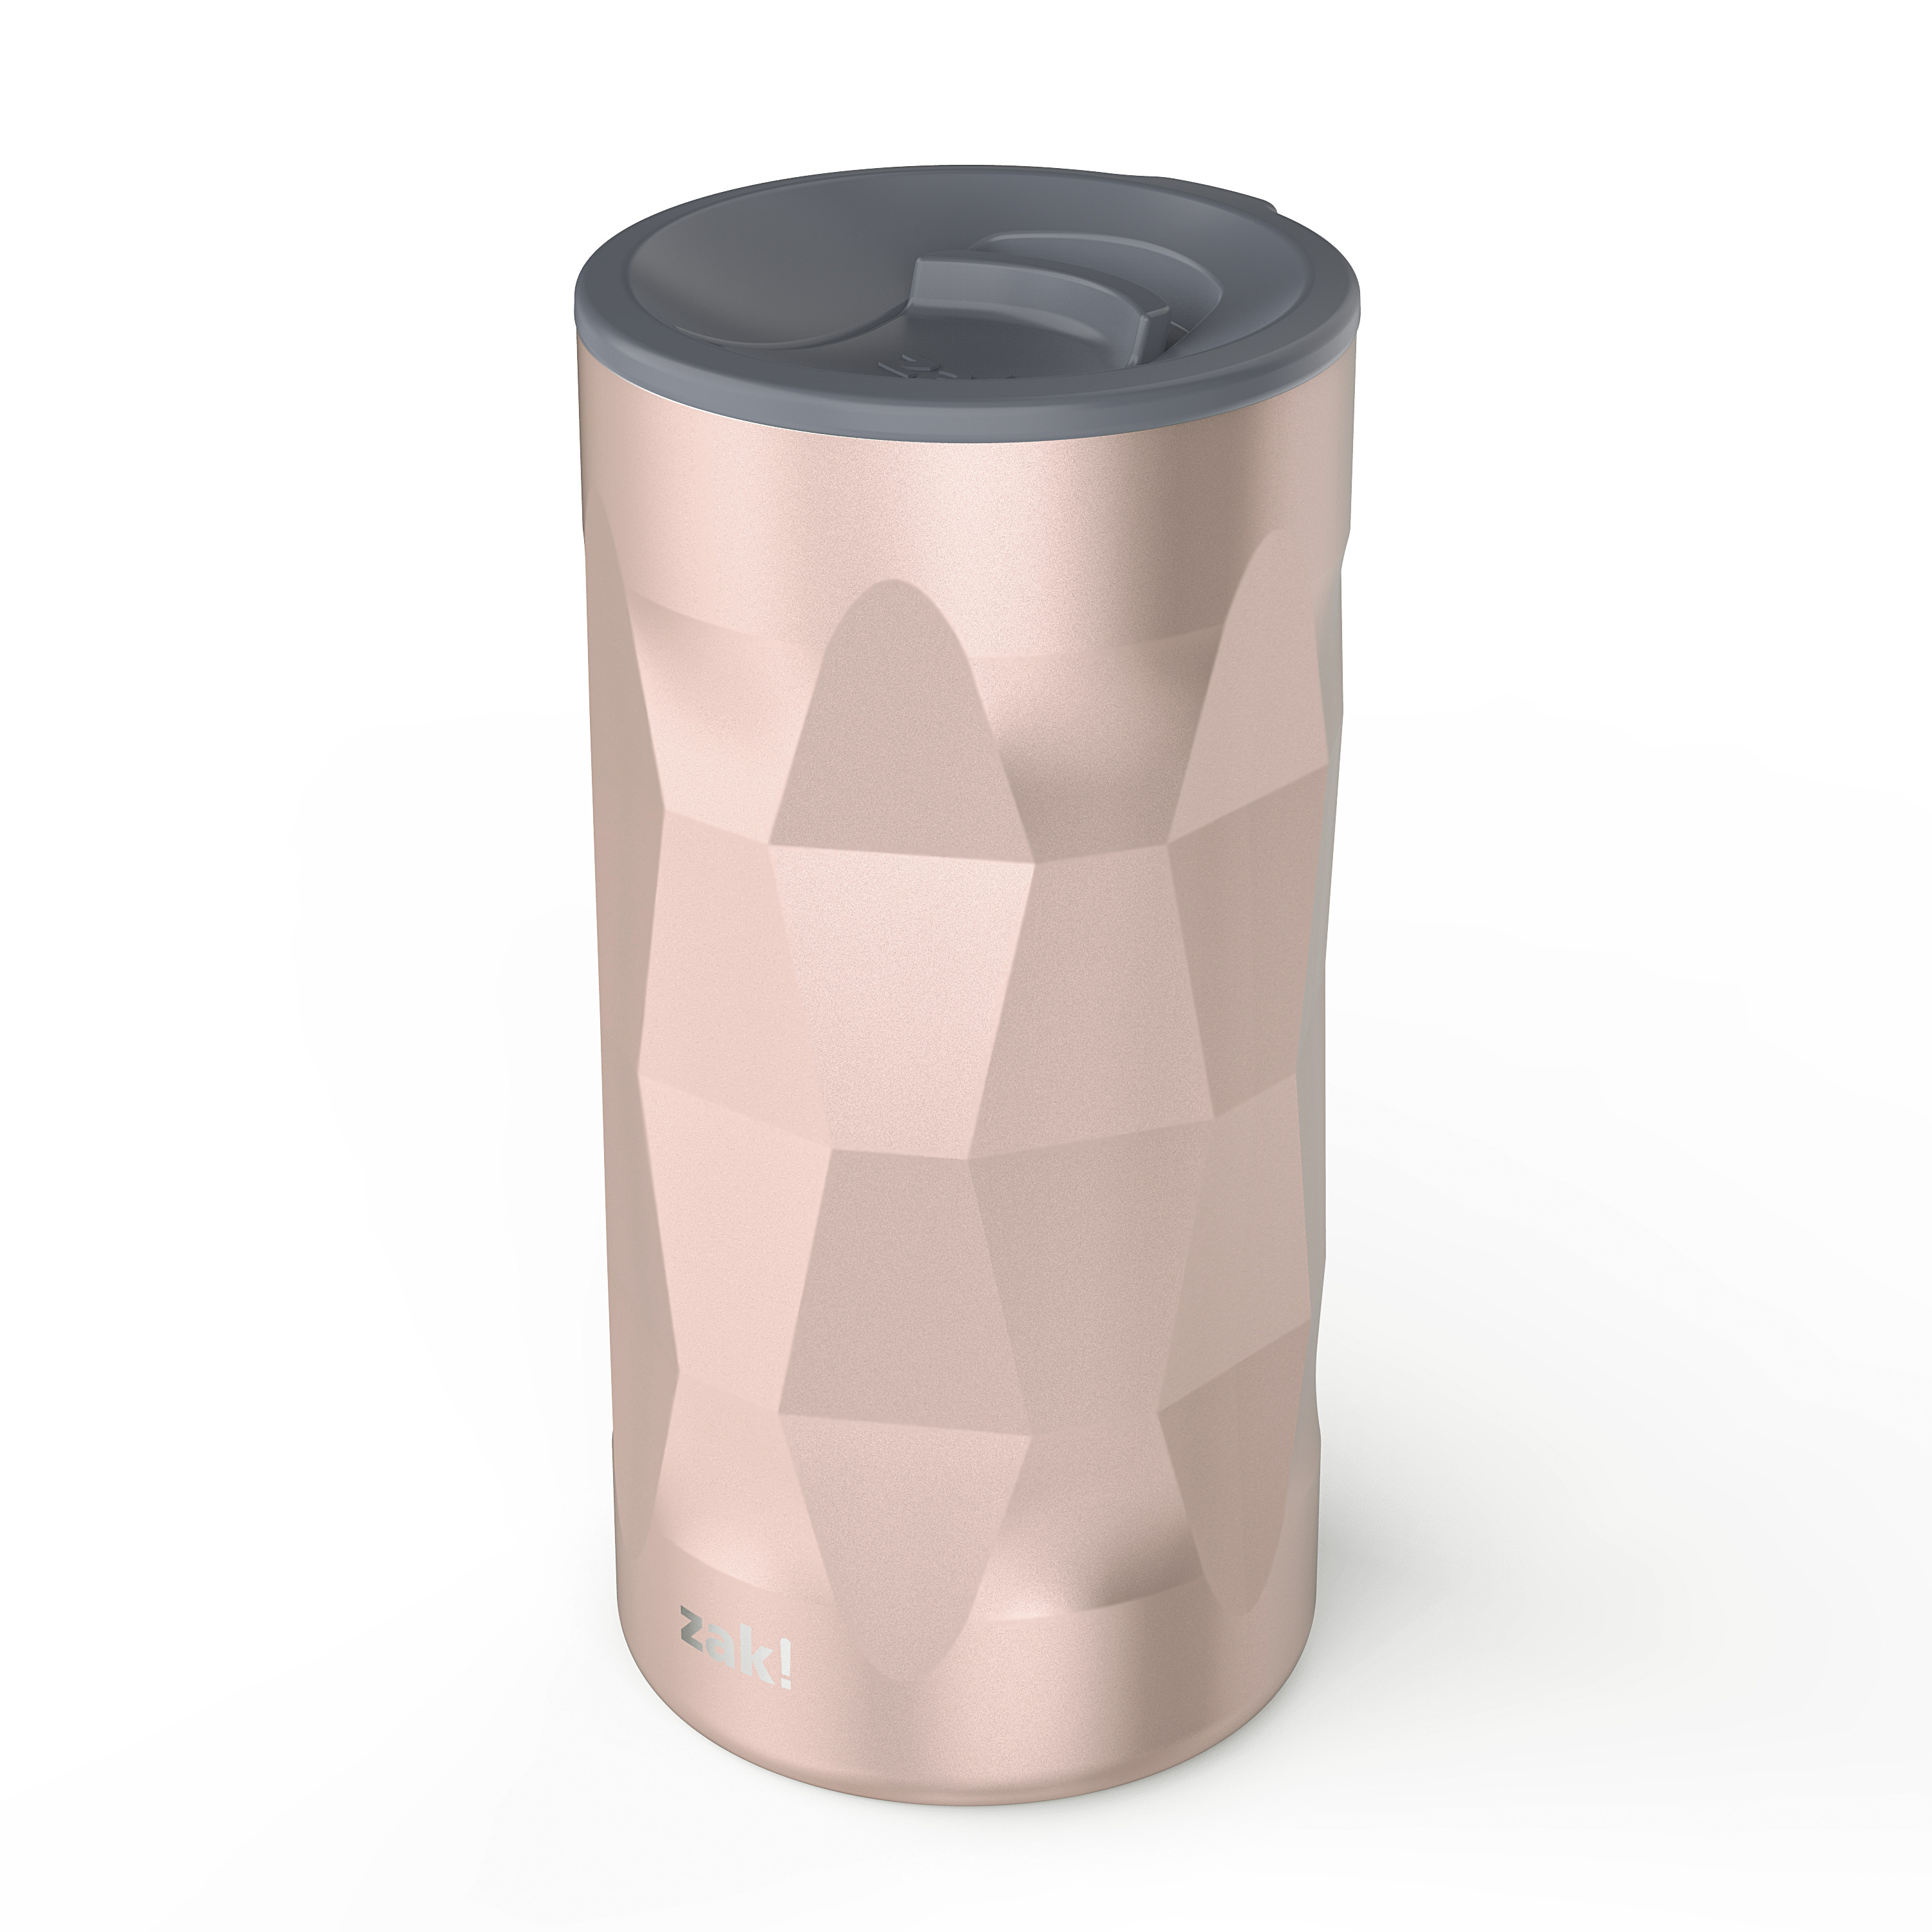 Fractal 12 ounce Vacuum Insulated Stainless Steel Tumbler, Rose Gold slideshow image 2